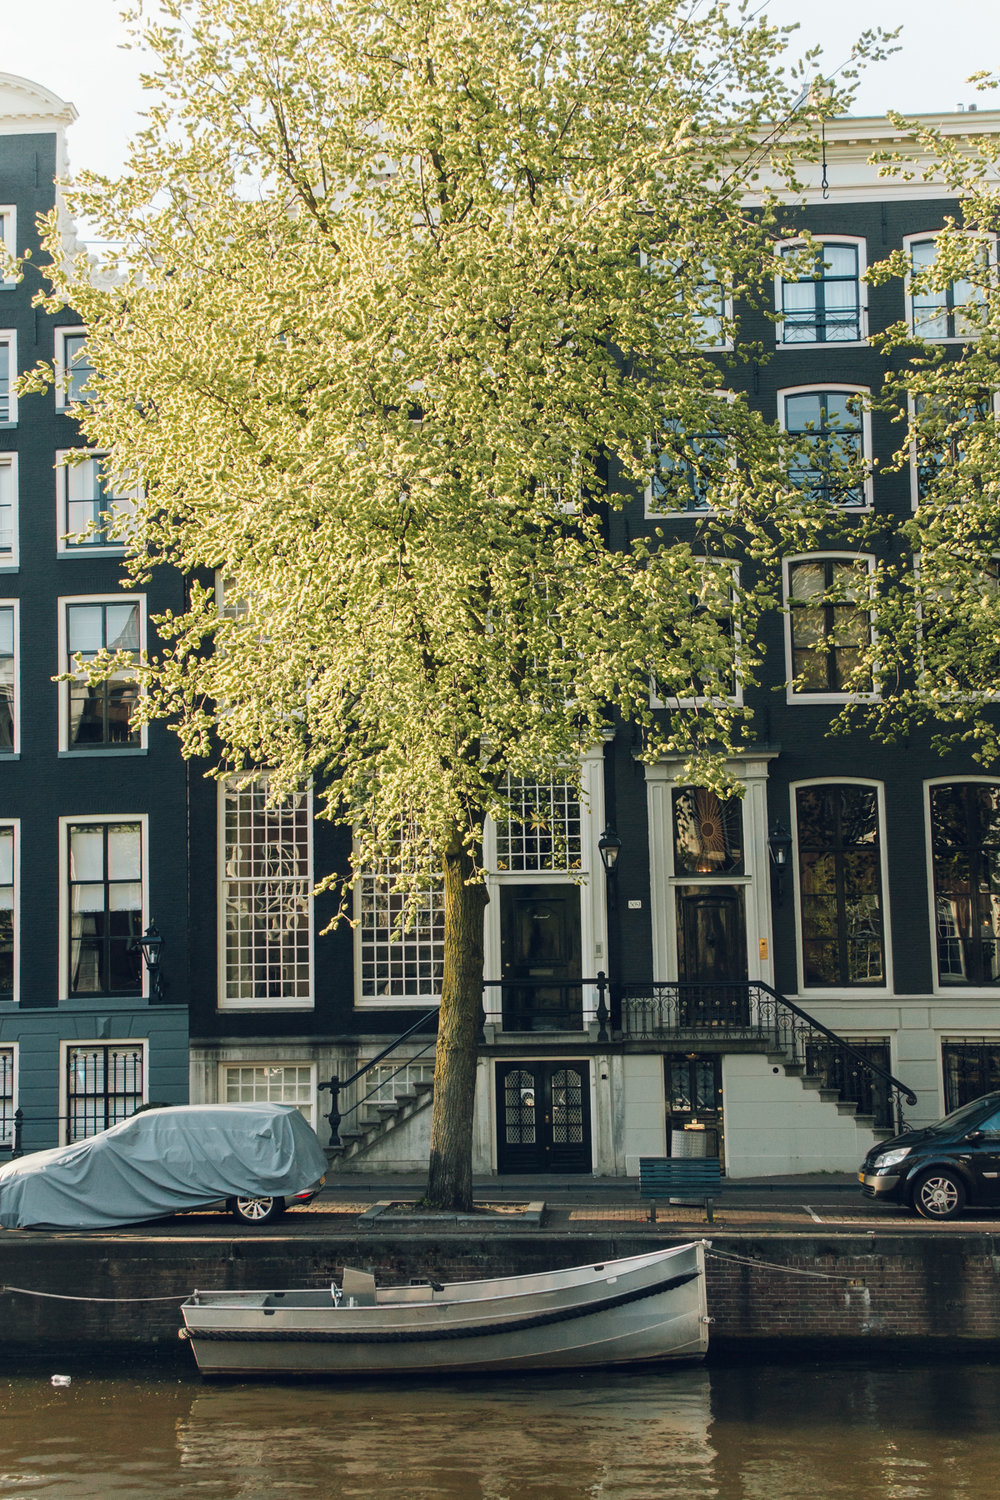 Wonky Amsterdam houses in spring.